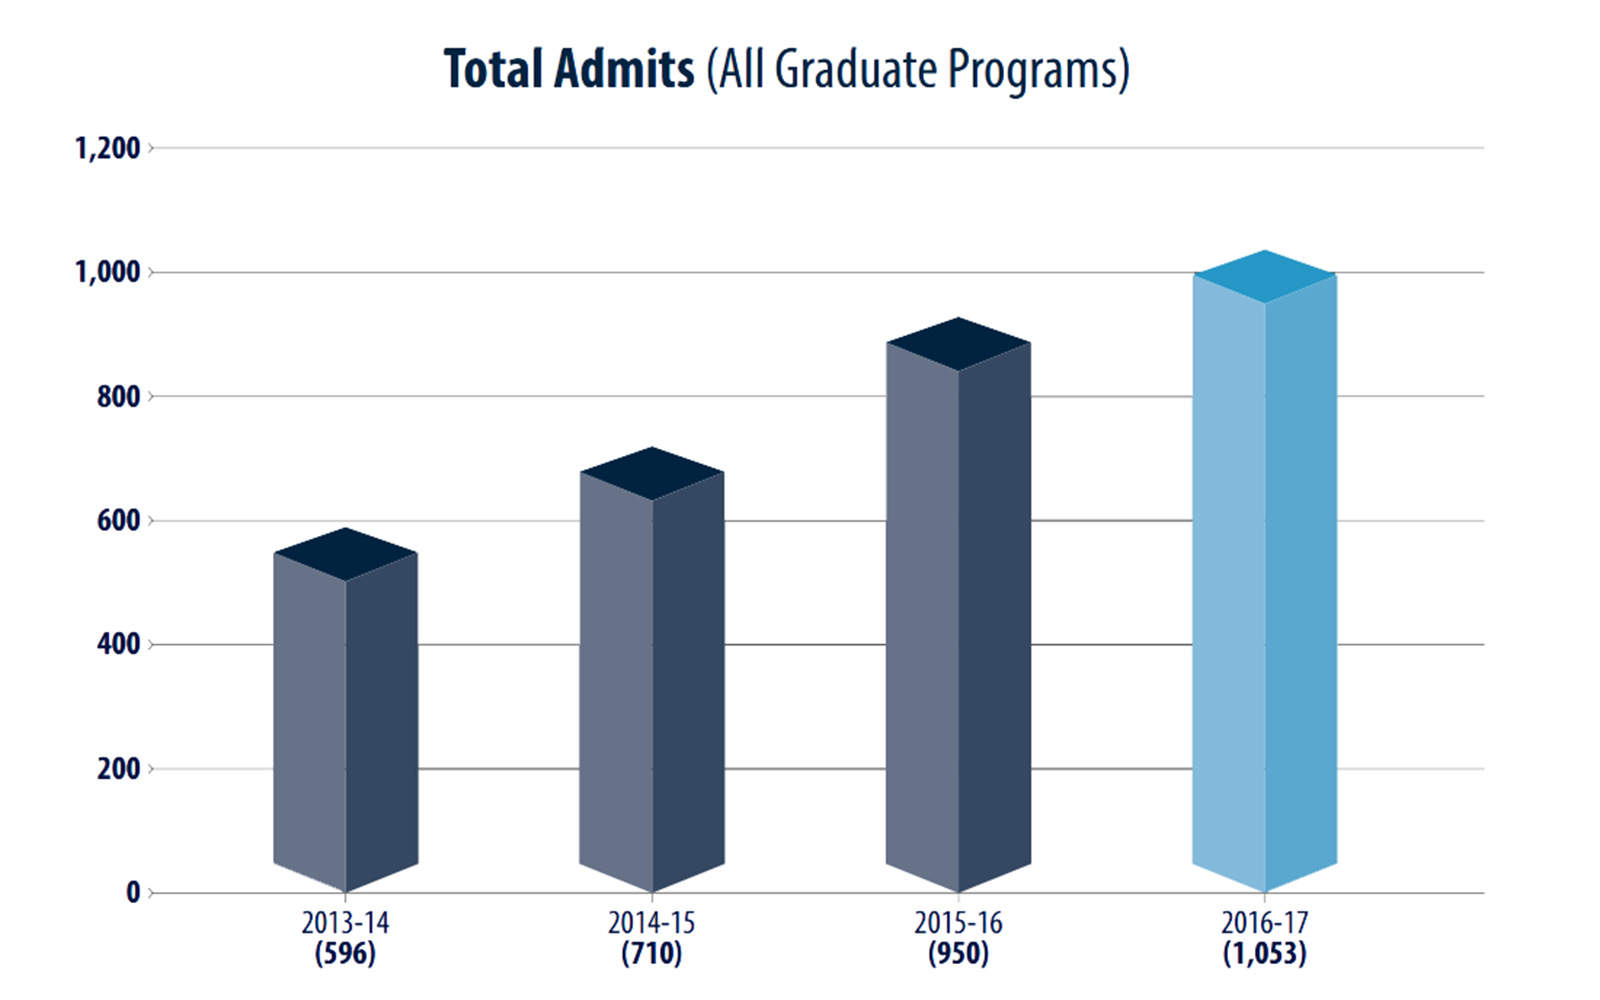 Graduate business program enrollments have soared in recent years, driven in large part by the launch of our newest specialty masters degrees - MSFRM (2010) and MSBAPM (2011).